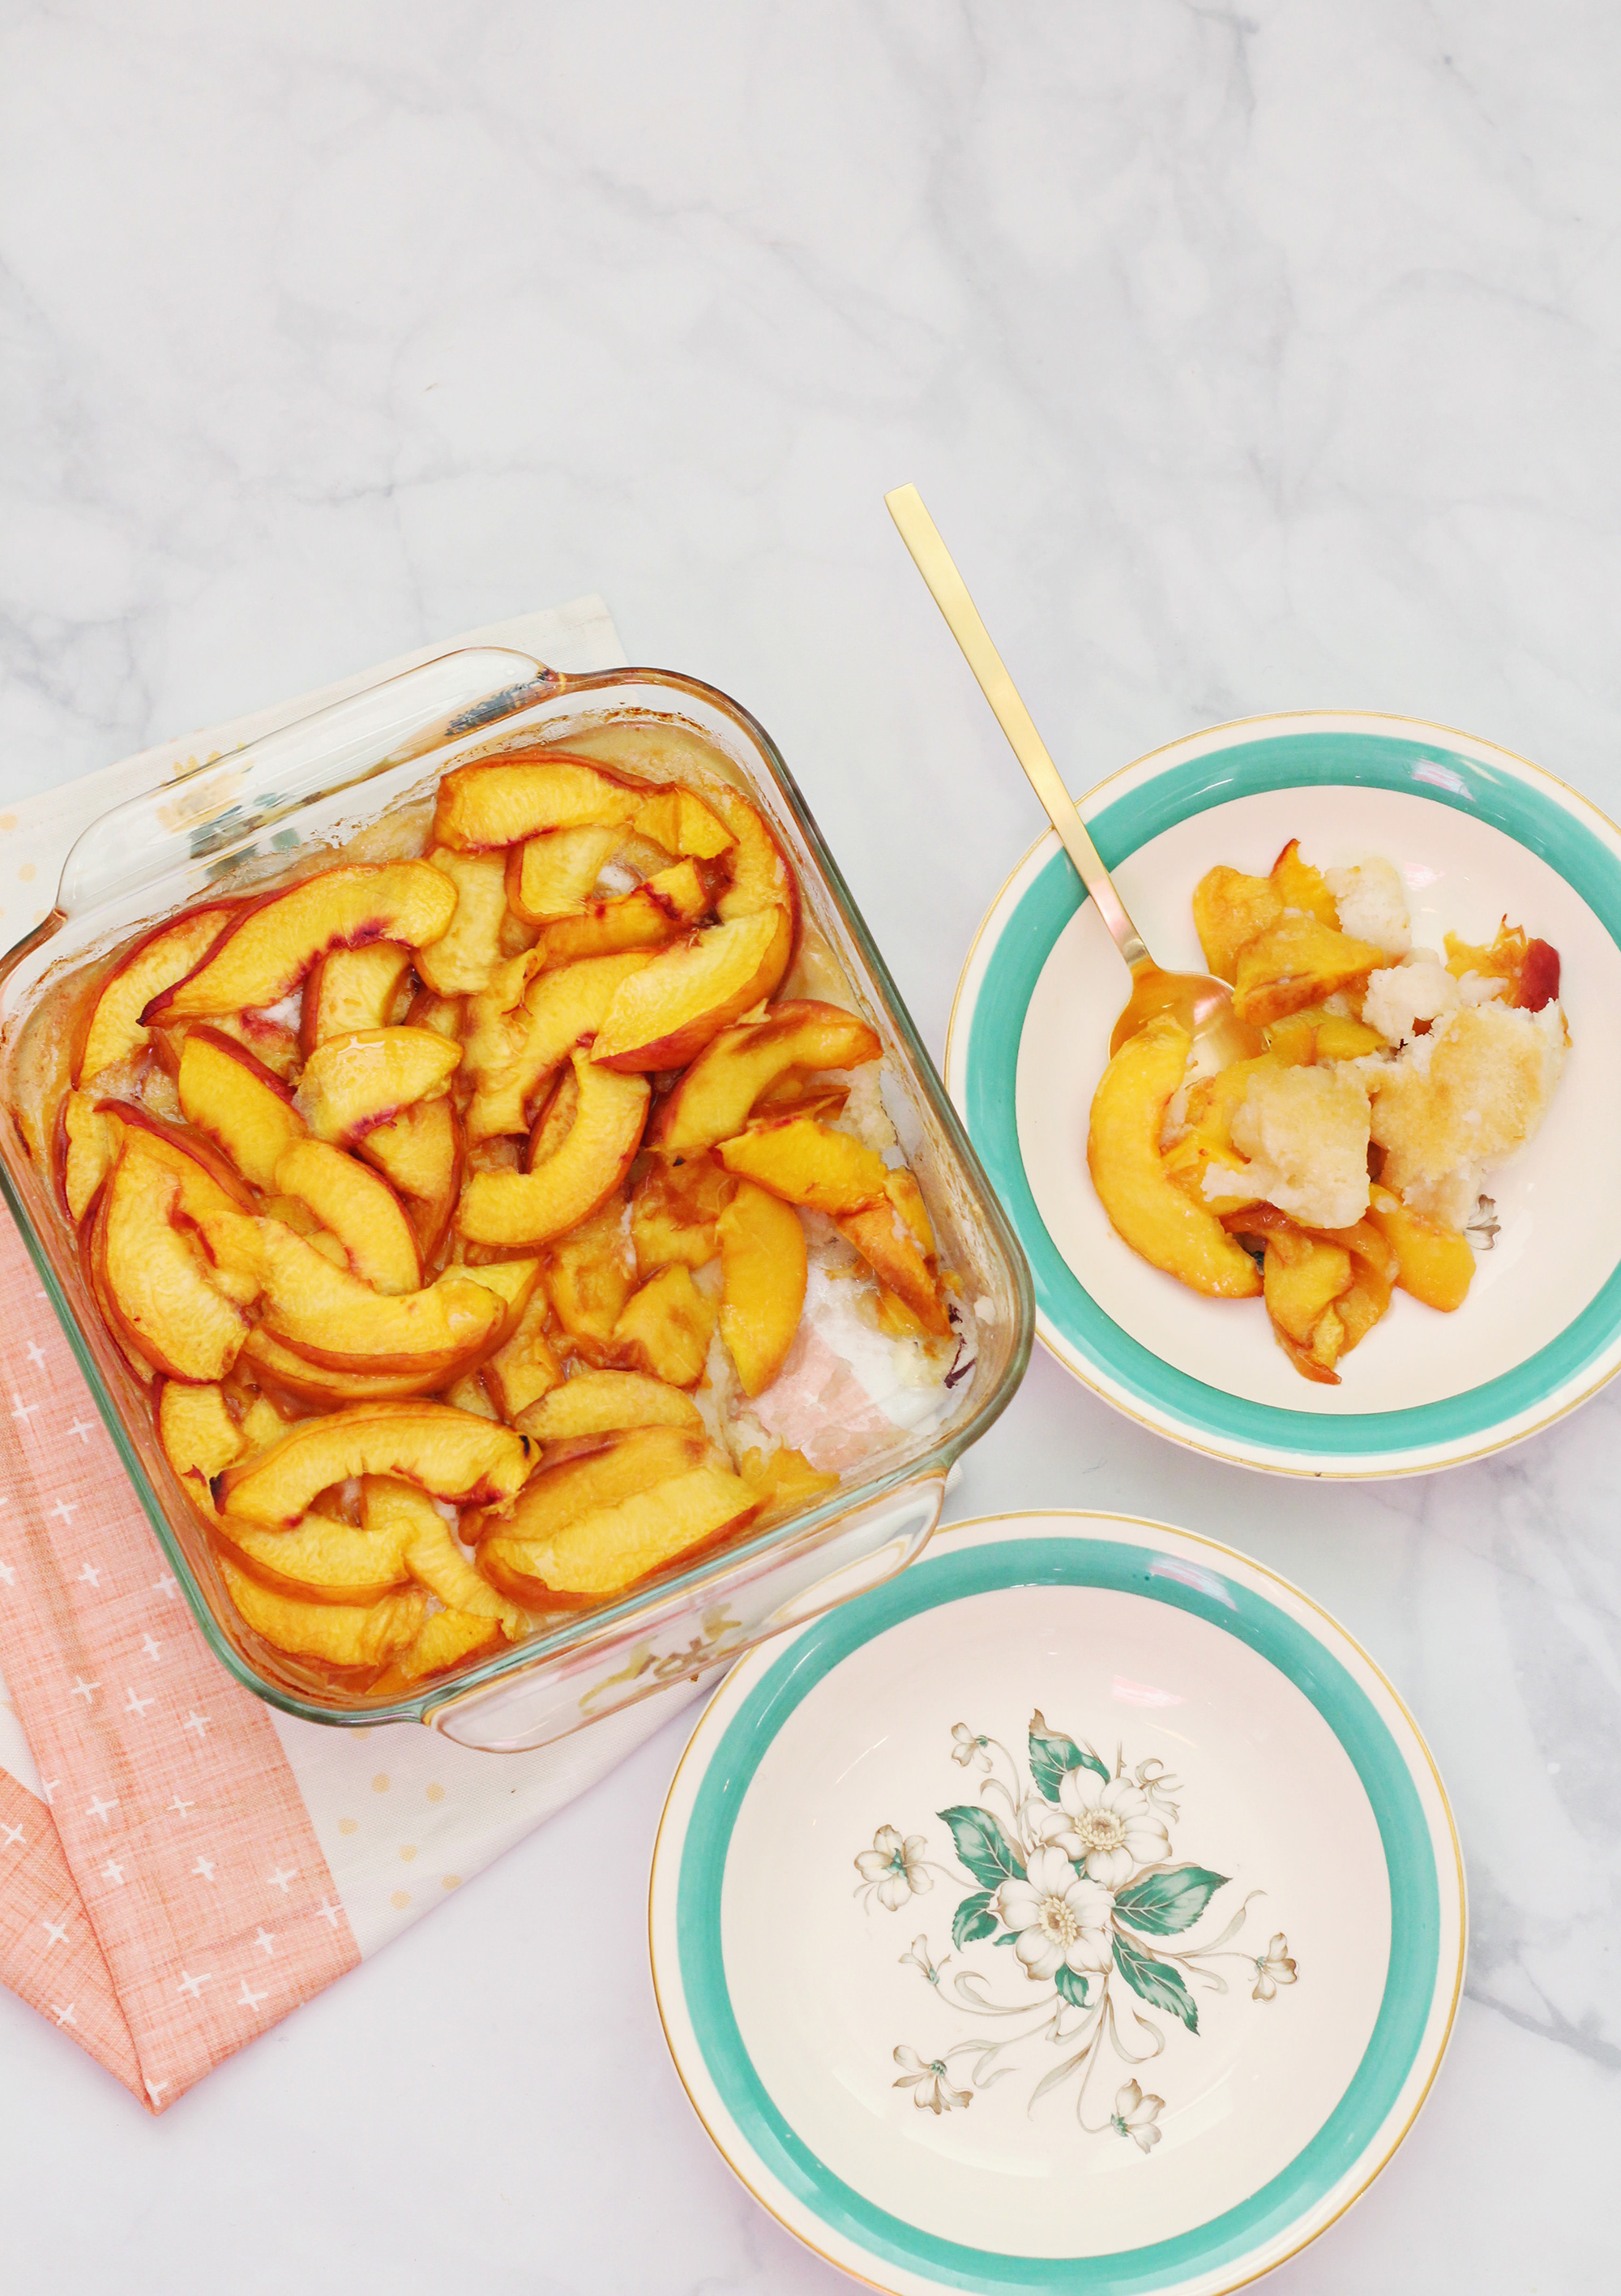 Serve up a fresh peach cobbler recipe. We brought our Lily & Val Peach Cobbler print to life on Lily & Val Living!